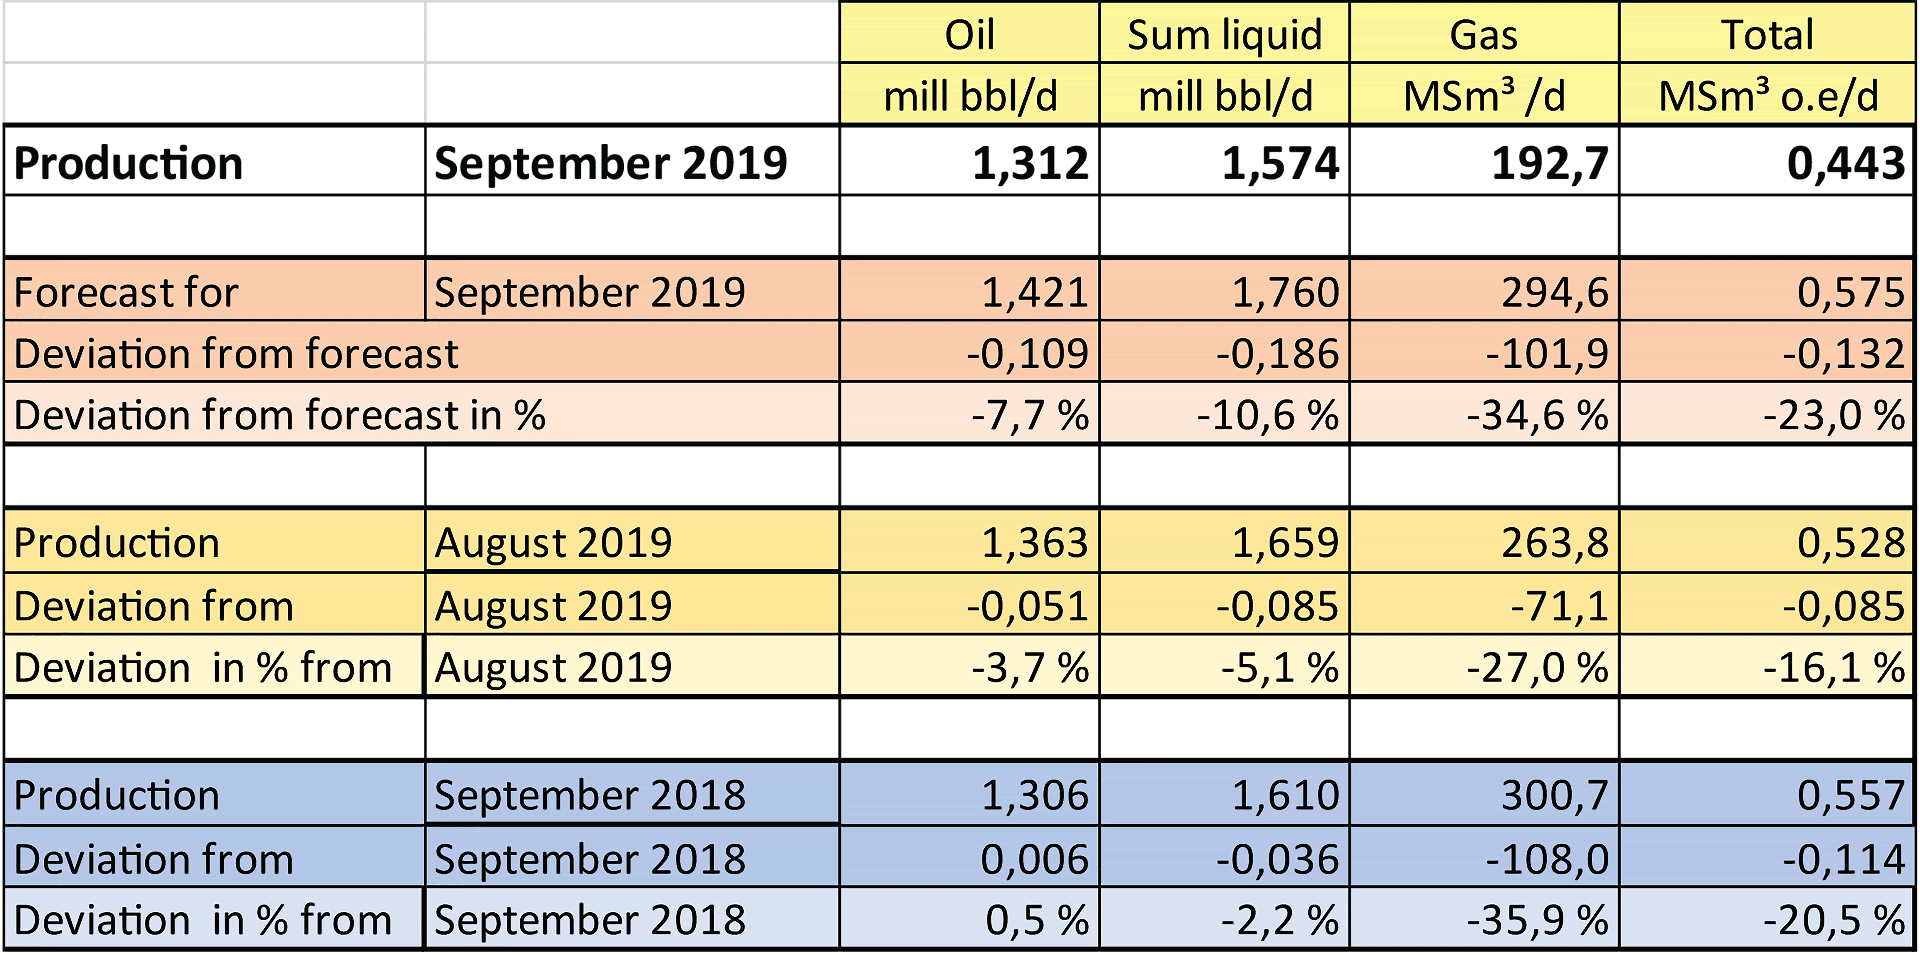 Table showing production of oil and gas for September 2019